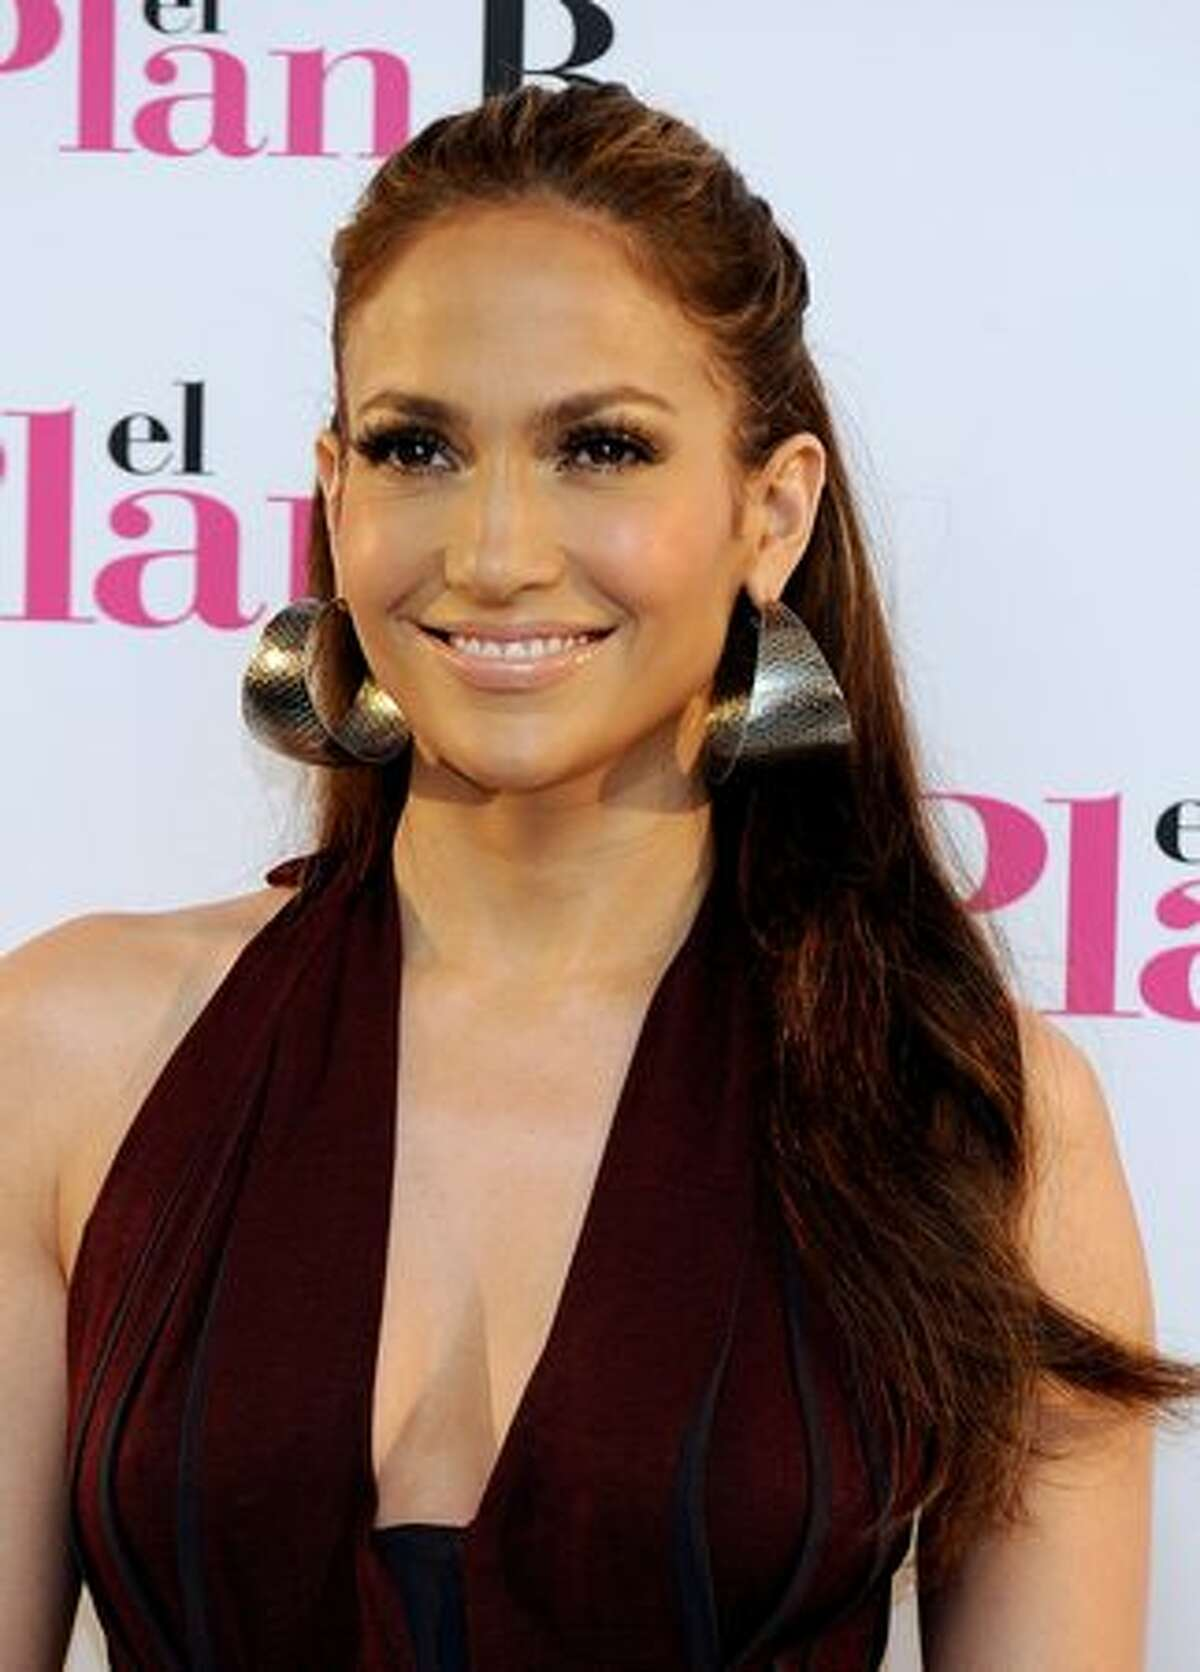 """Actress Jennifer Lopez attends the """"Plan B"""" (""""The Back-Up Plan"""") photocall at the Villamagna Hotel on Monday in Madrid, Spain."""